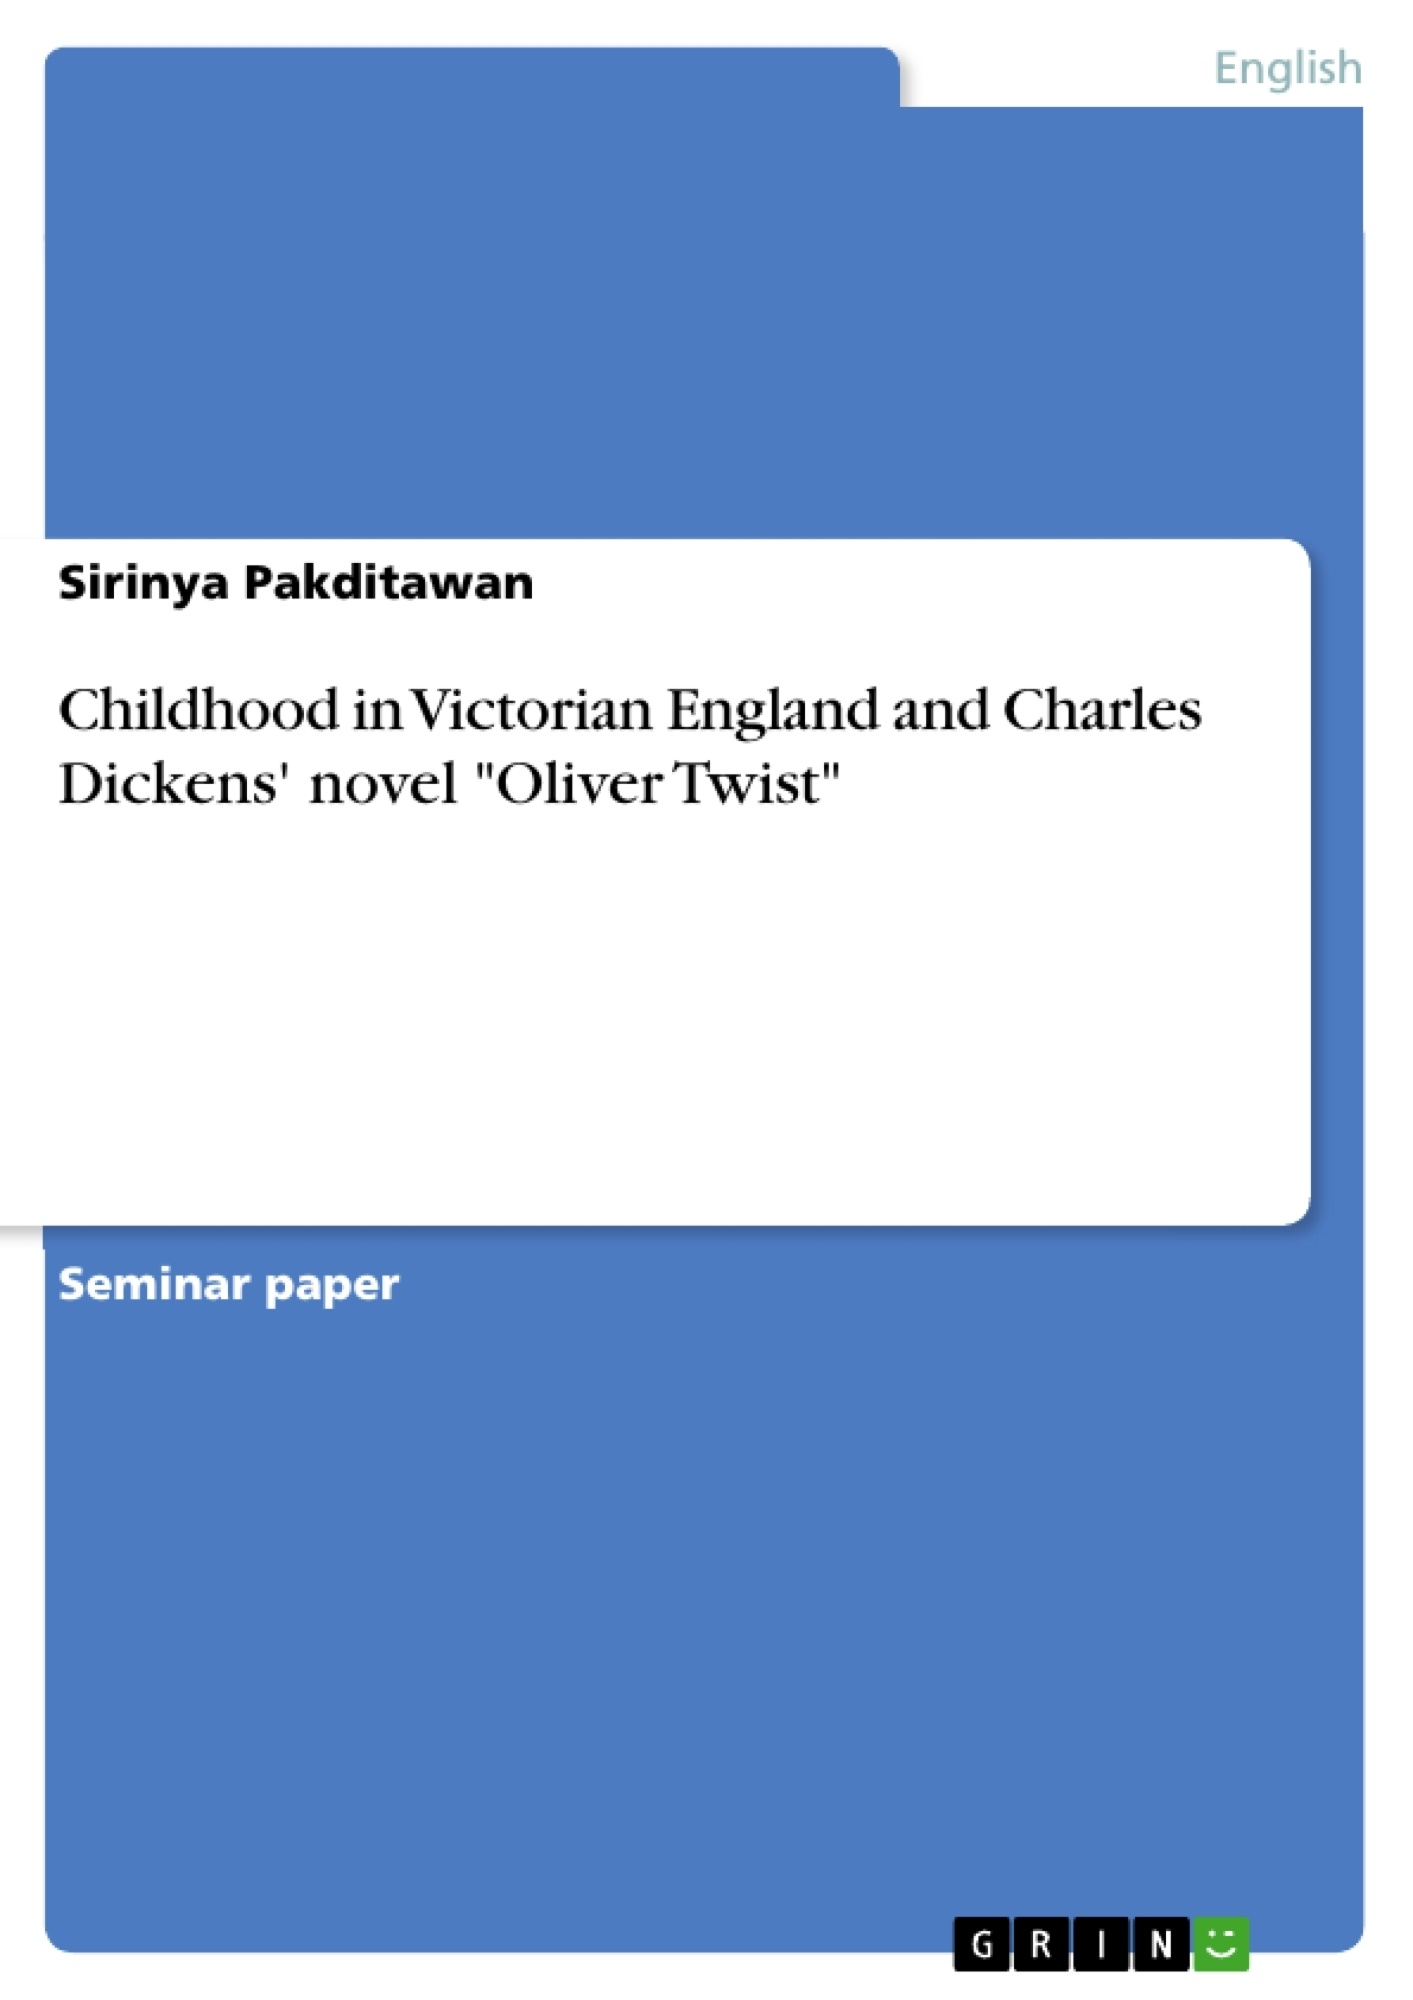 """Title: Childhood in Victorian England and Charles Dickens' novel """"Oliver Twist"""""""